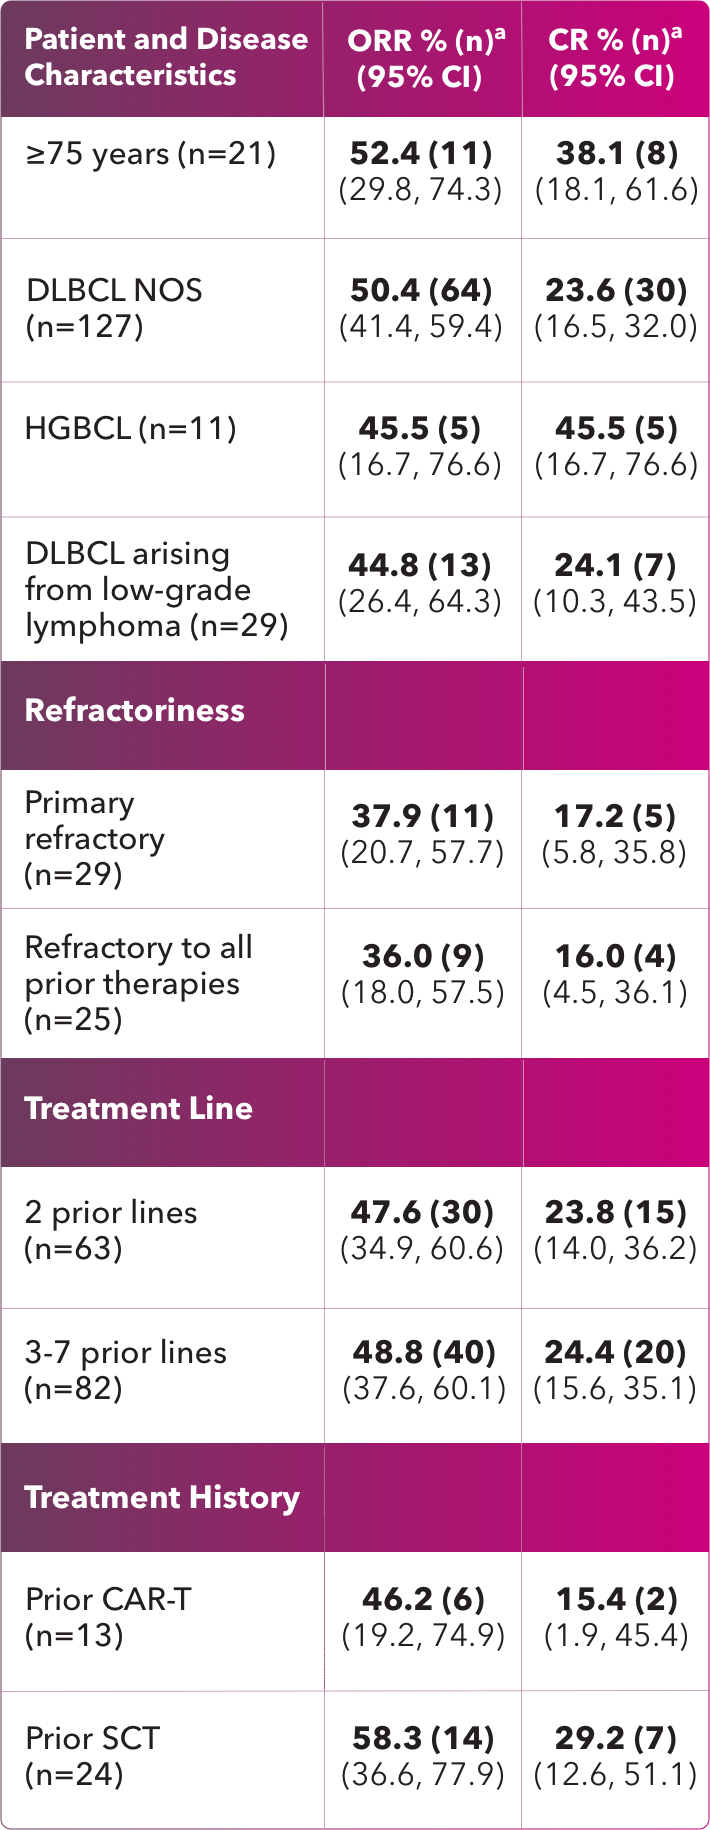 Response in select patient subgroups